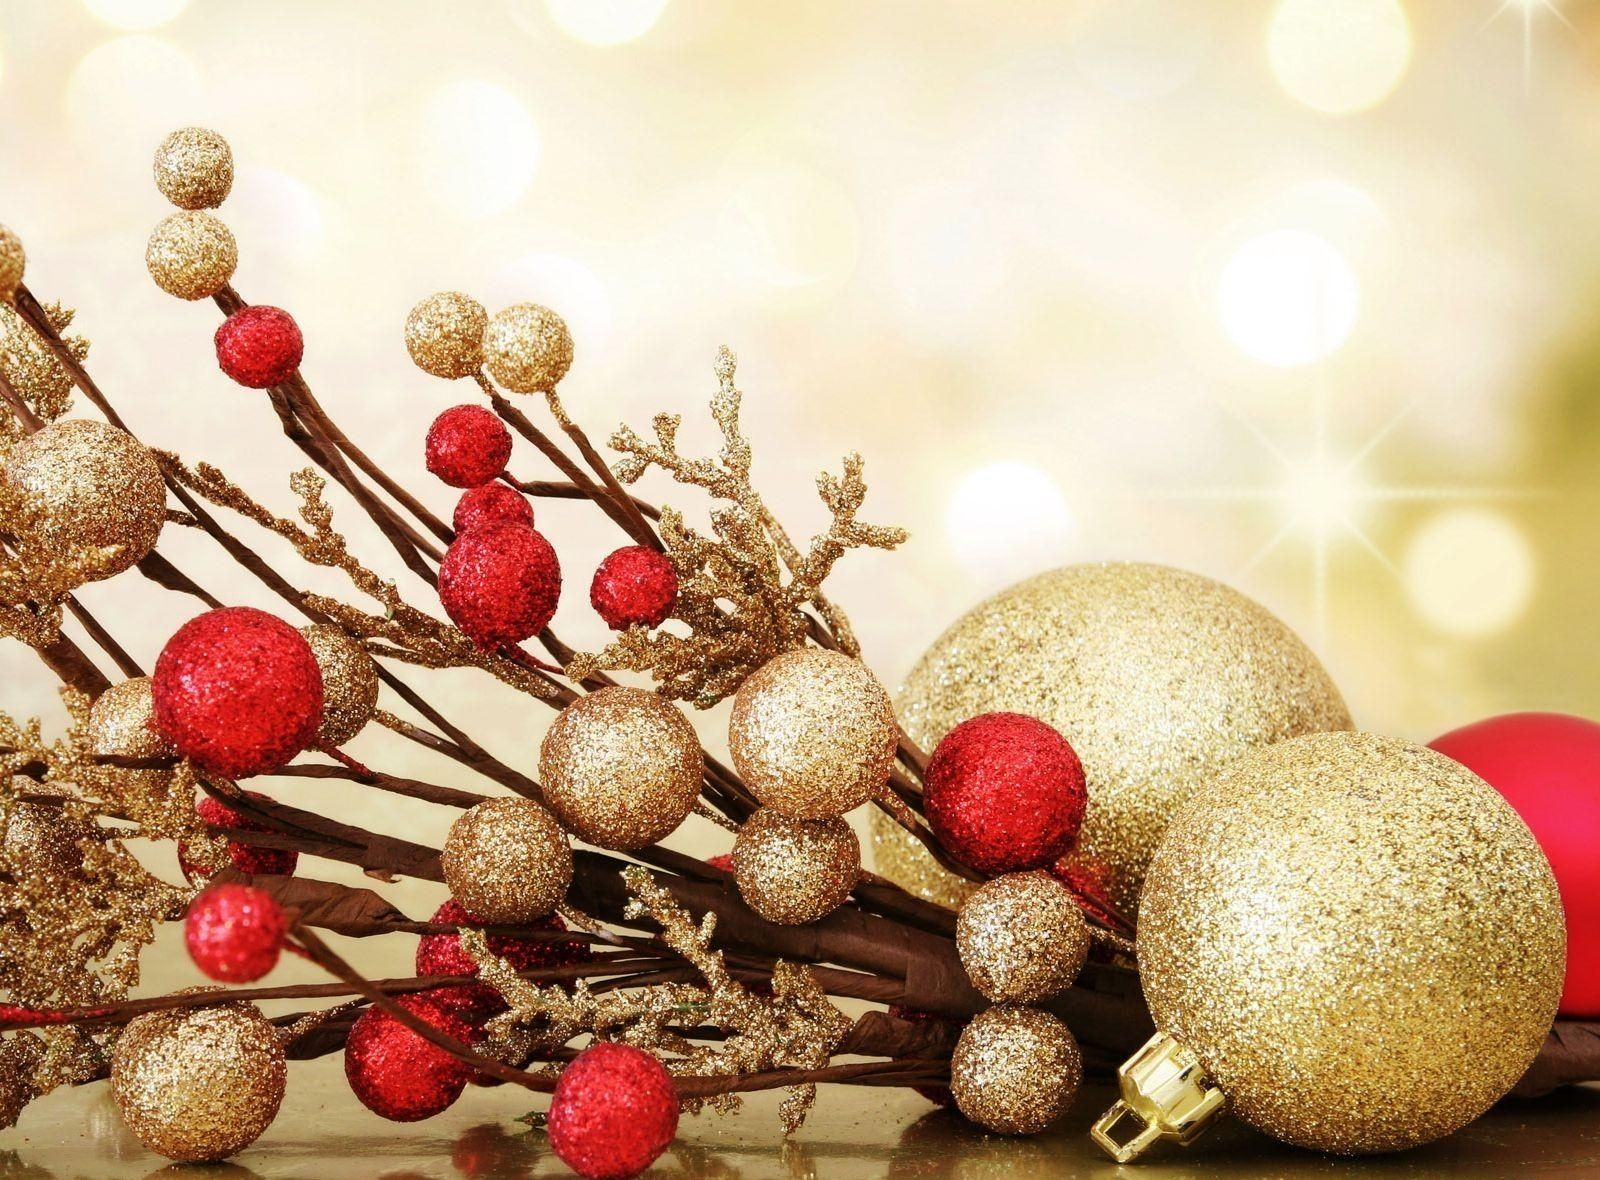 Christmas Ornaments Background.Wallpaper Original Christmas Decorations Balloons Thread